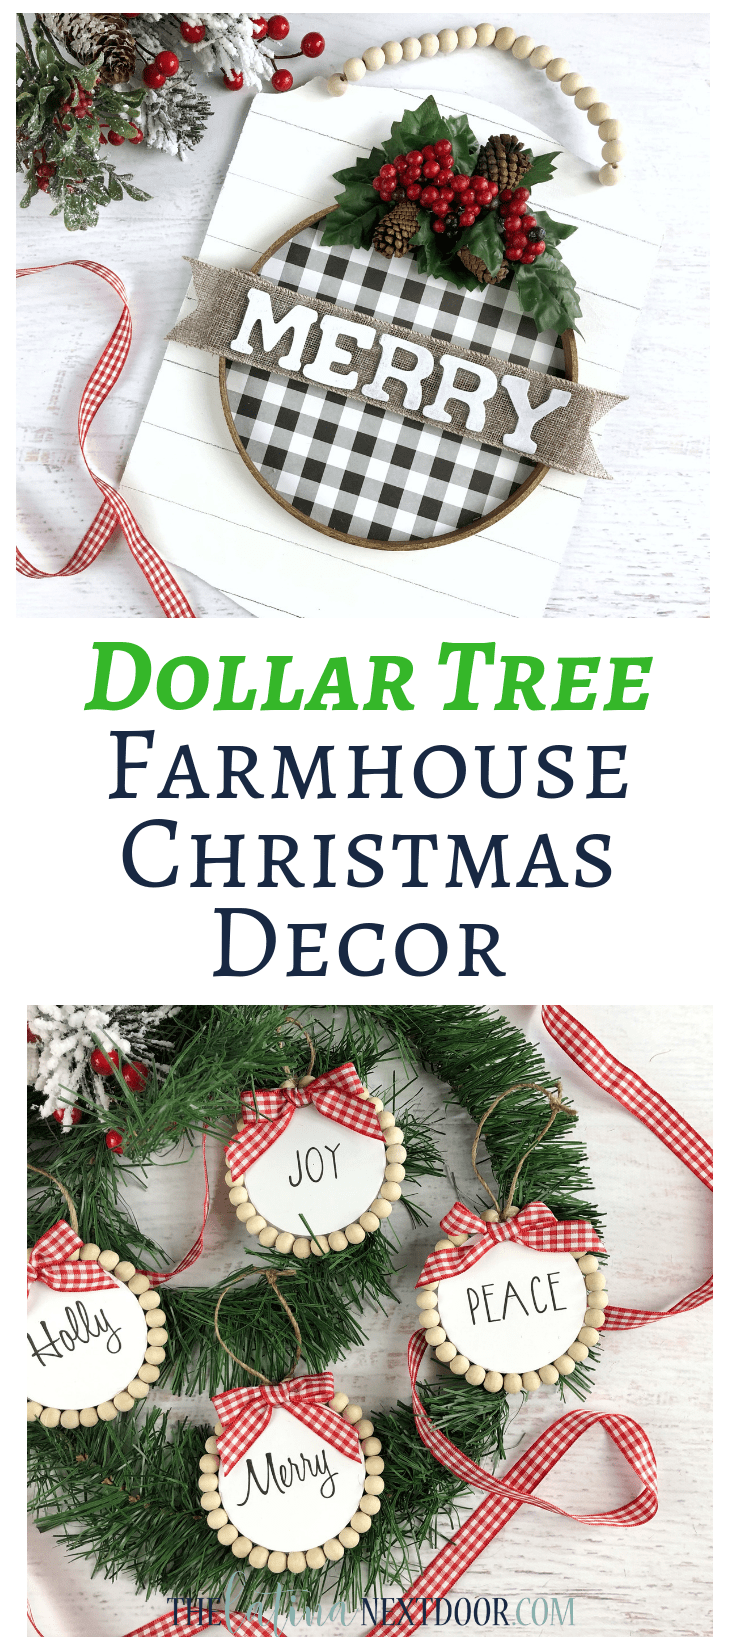 Dollar Tree Farmhouse Christmas Ornaments The Latina Next Door Farmhouse Christmas Ornaments Diy Dollar Tree Christmas Decor Diy Christmas Ornaments